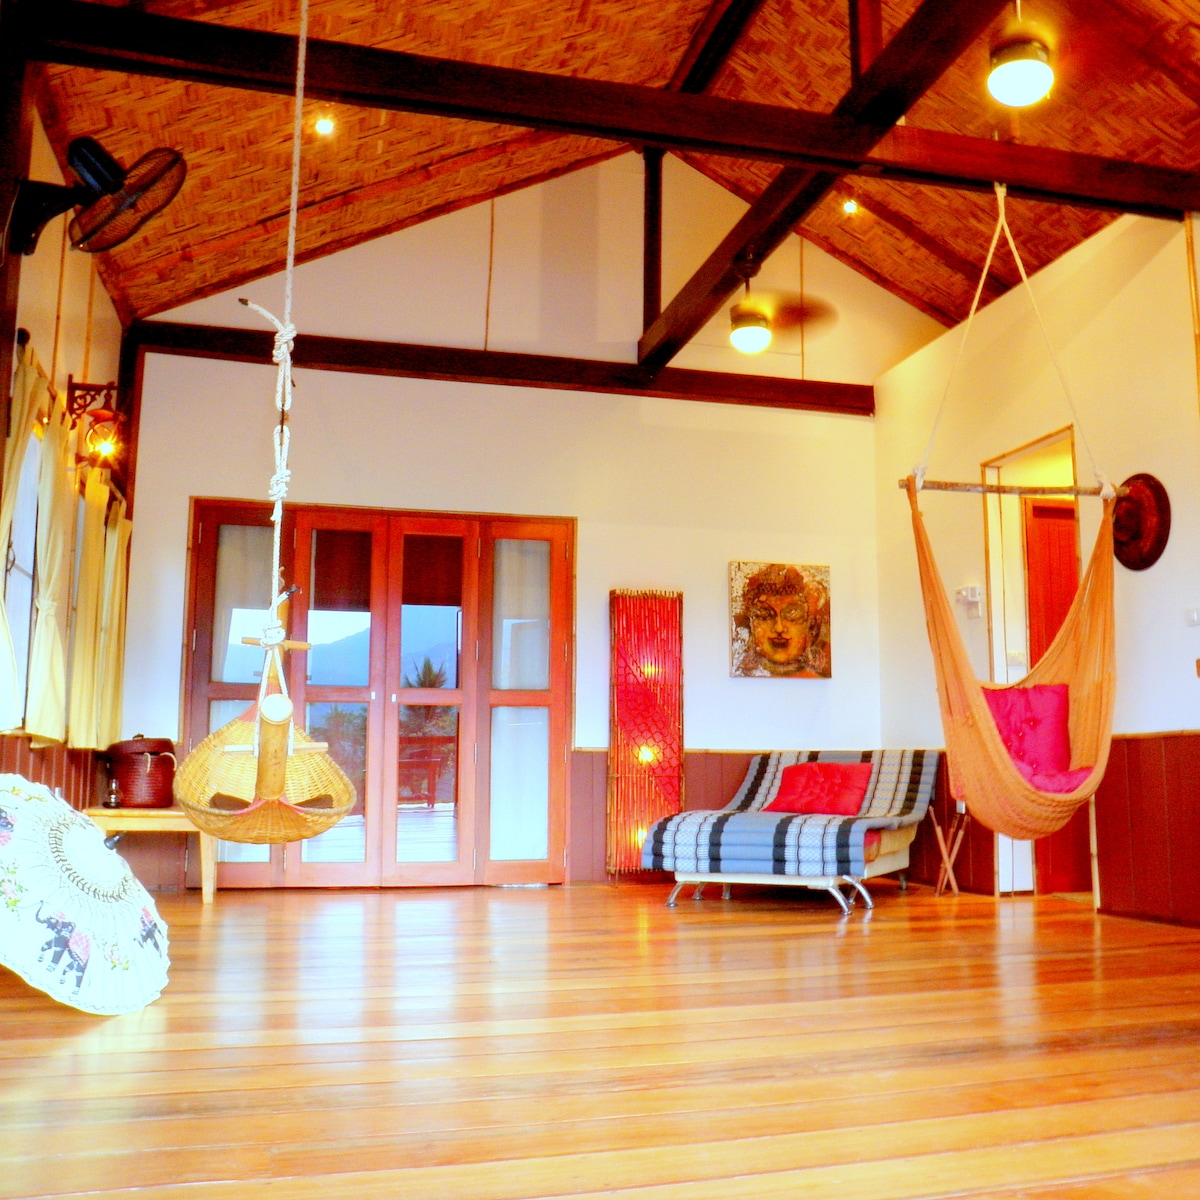 Comfortable lounge and hammocks atmosphere. Local, rustic, hand-crafted artisan living space